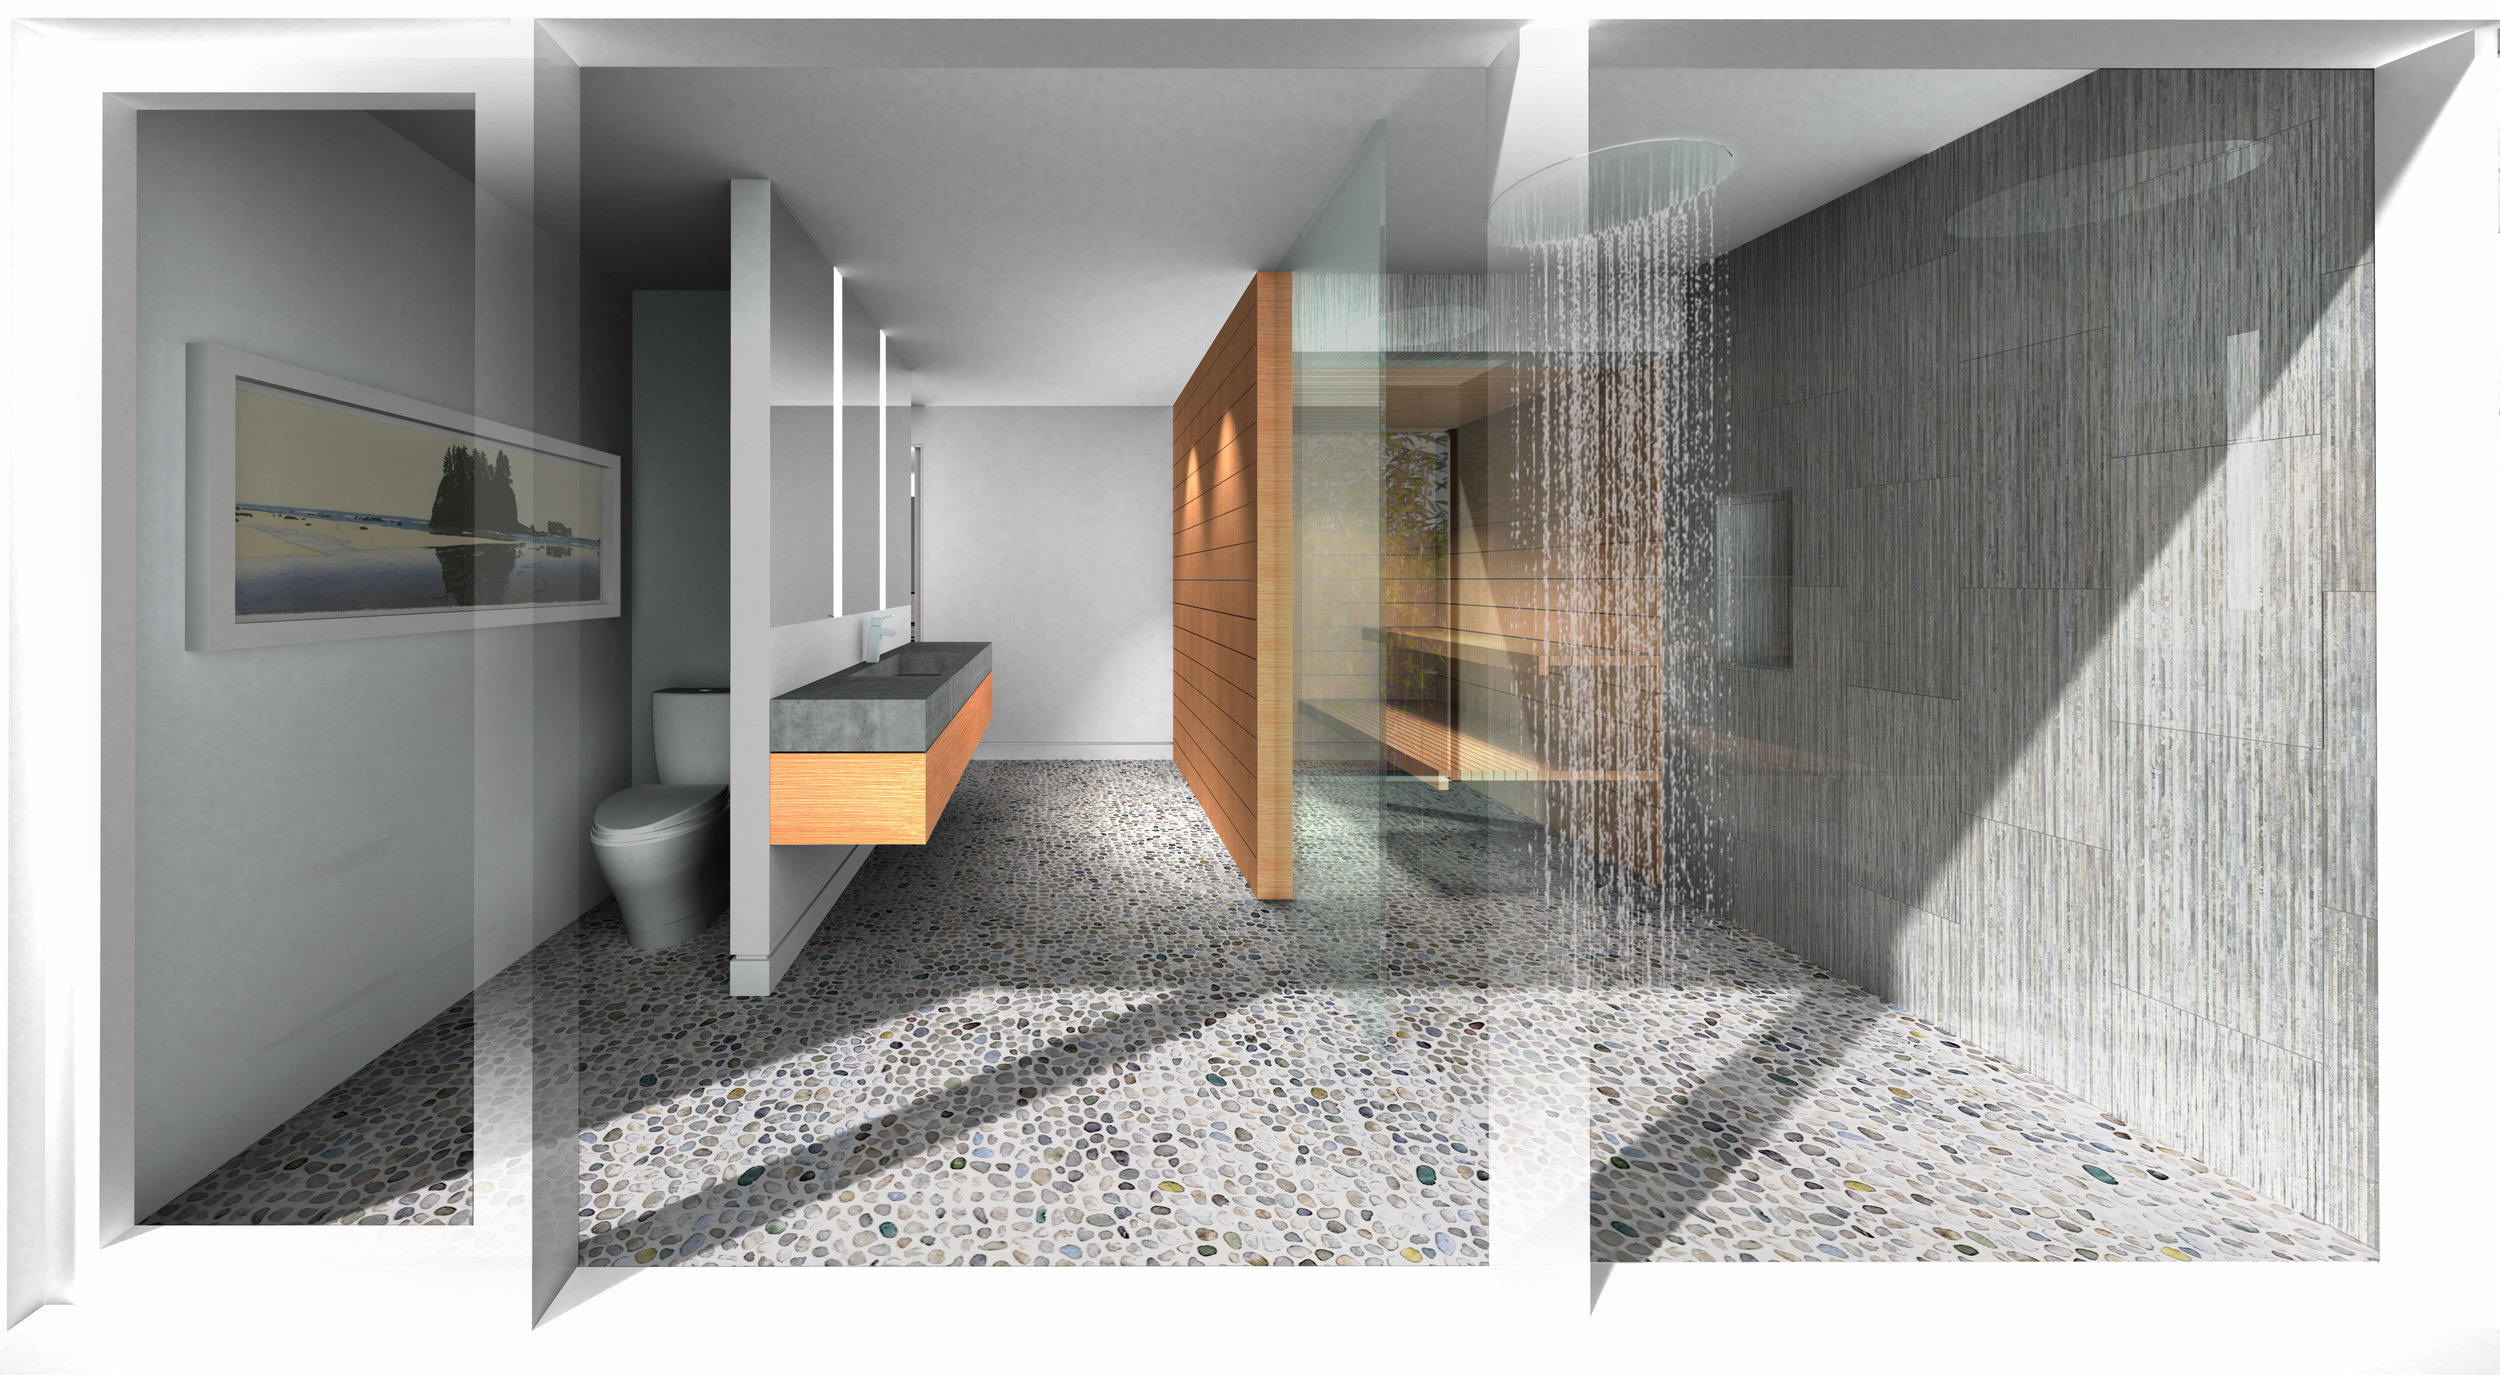 Master Bathroom Concept showing Sauna integration in background to right